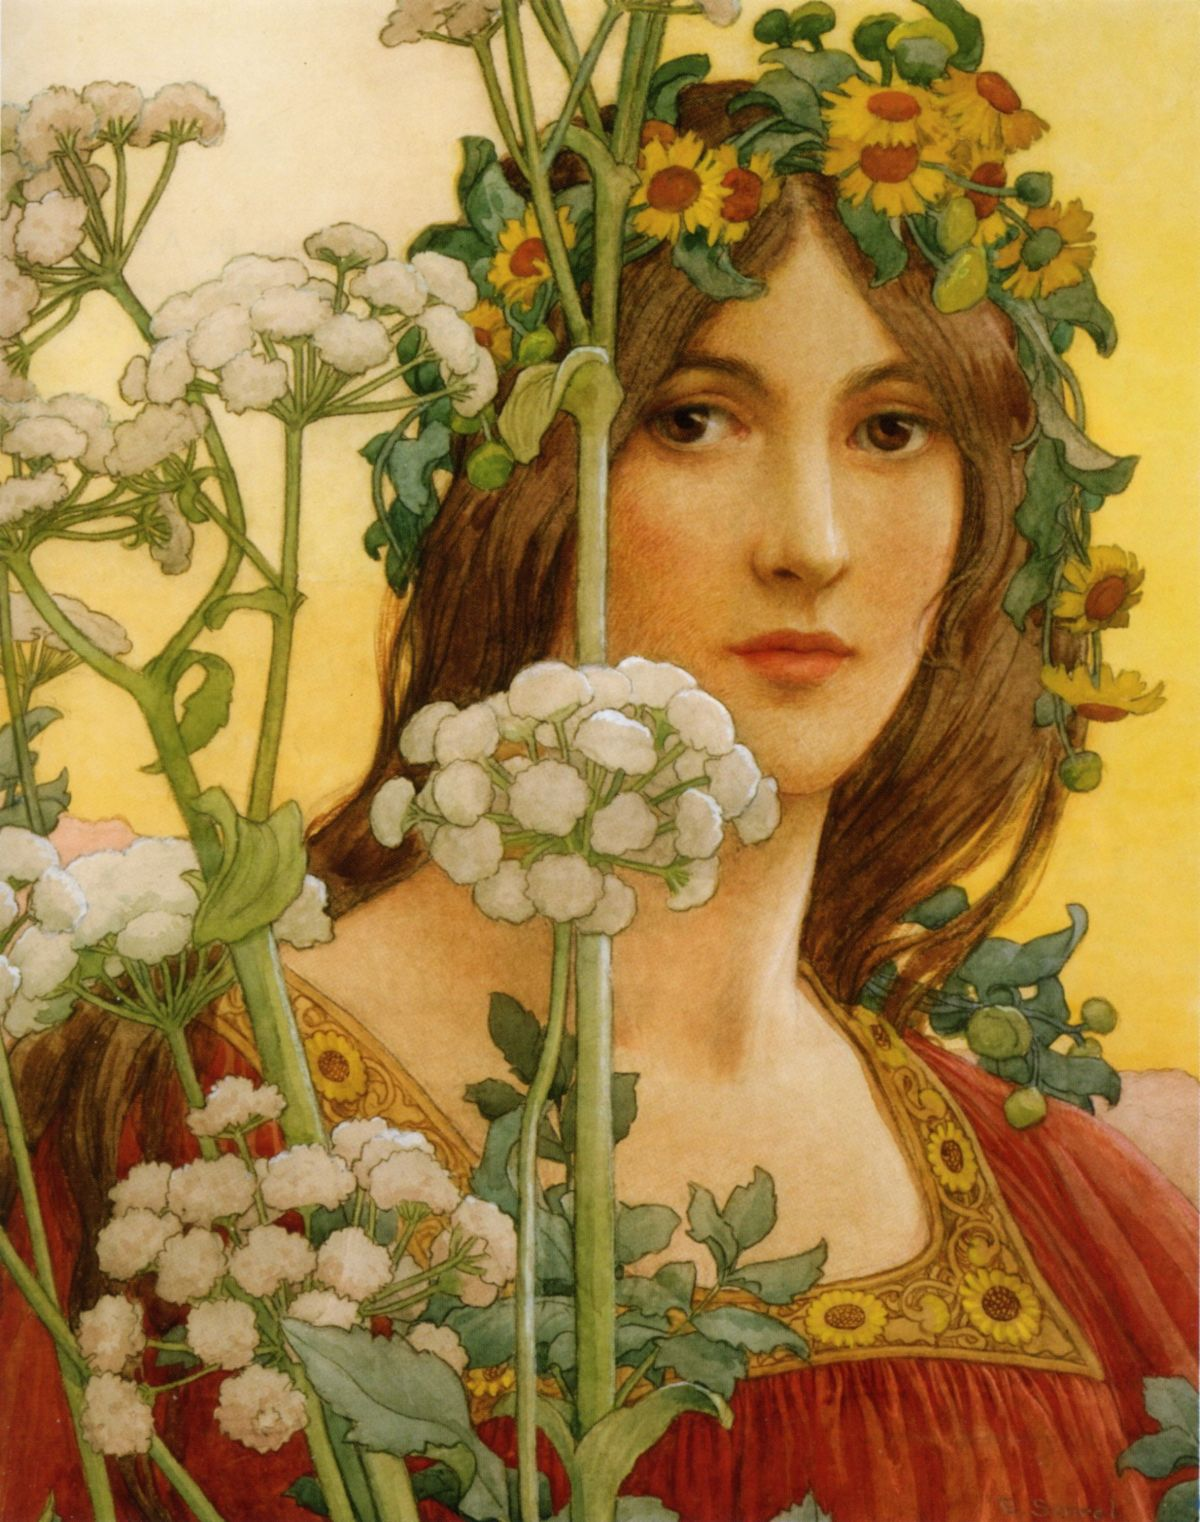 Our Lady of Cow Parsley by Elisabeth Sonrel-Portrait Painting